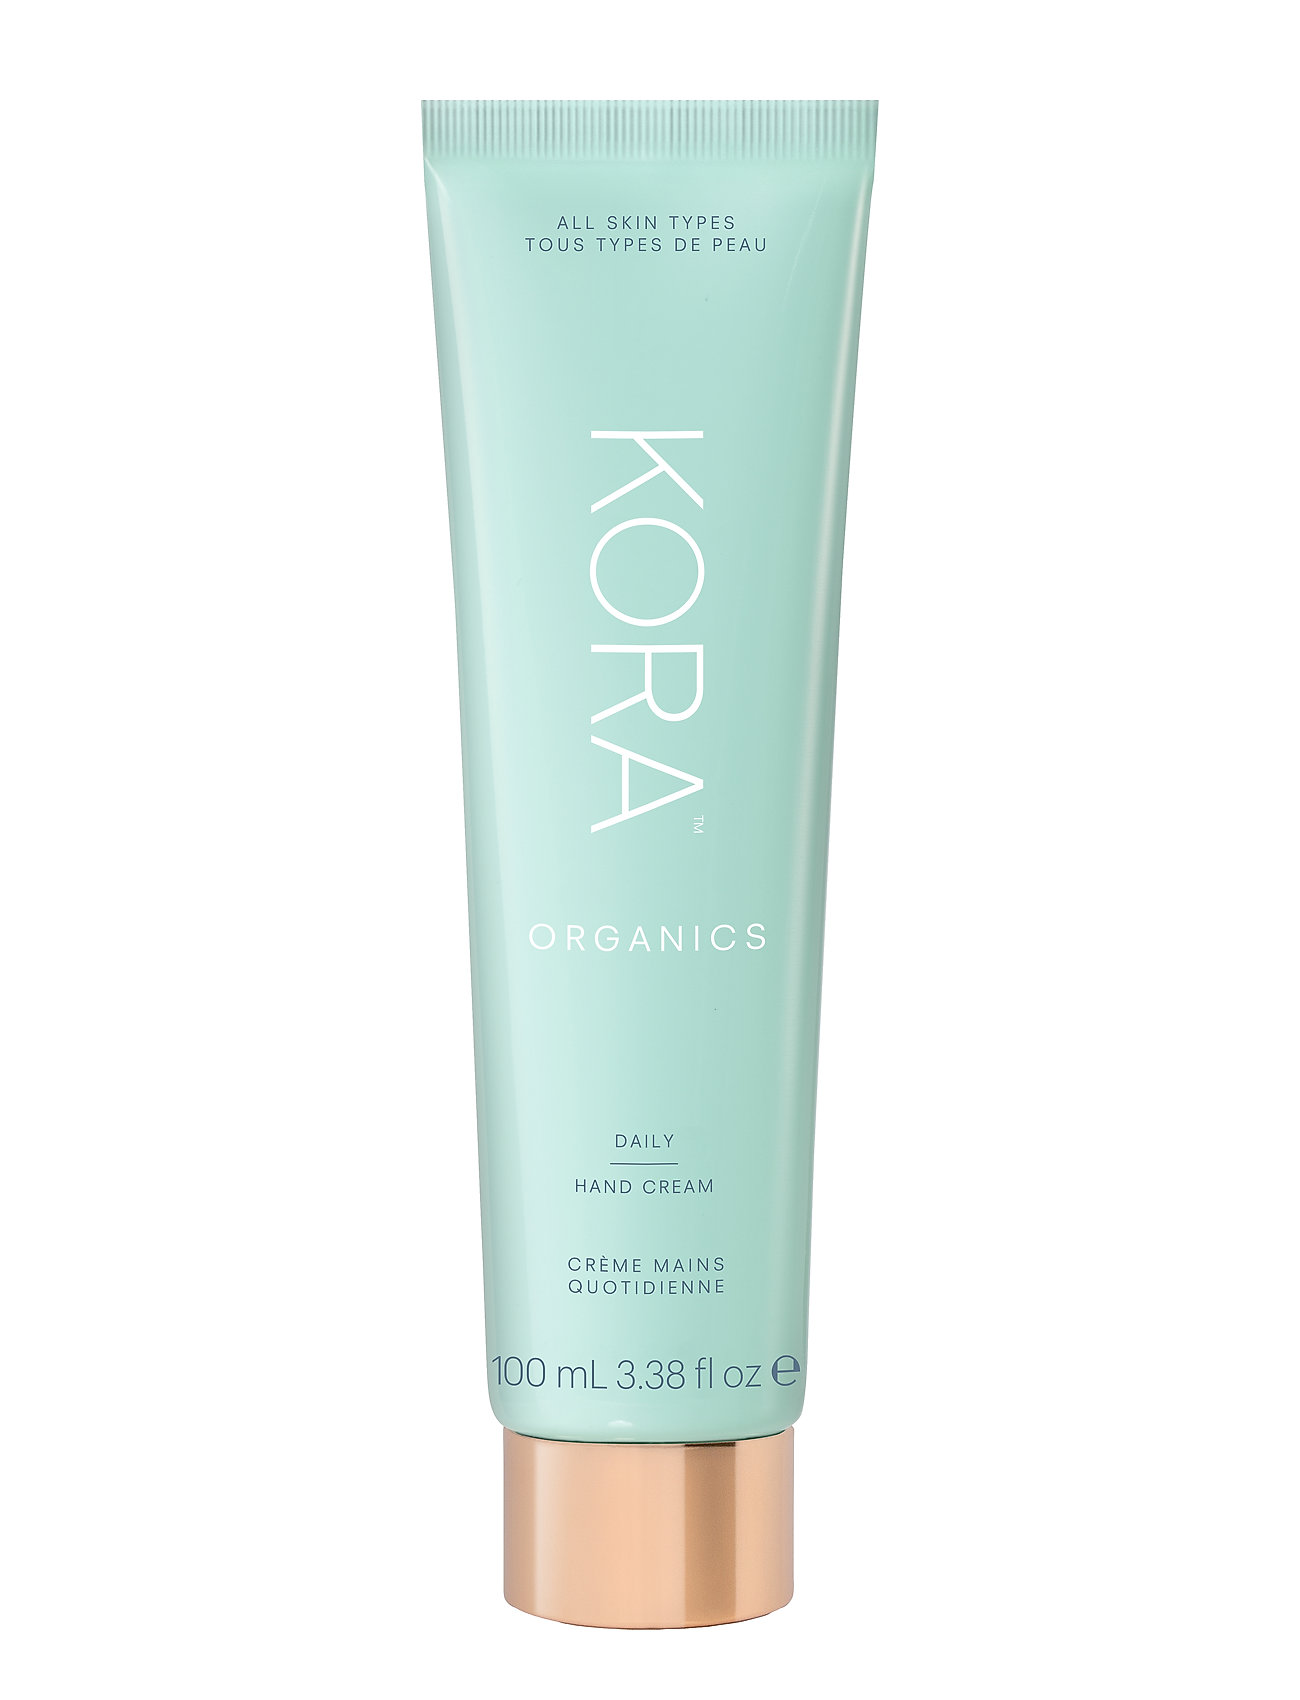 Image of Daily Hand Cream Beauty WOMEN Skin Care Body Hand Cream & Foot Cream Nude Kora Organics (3435491317)